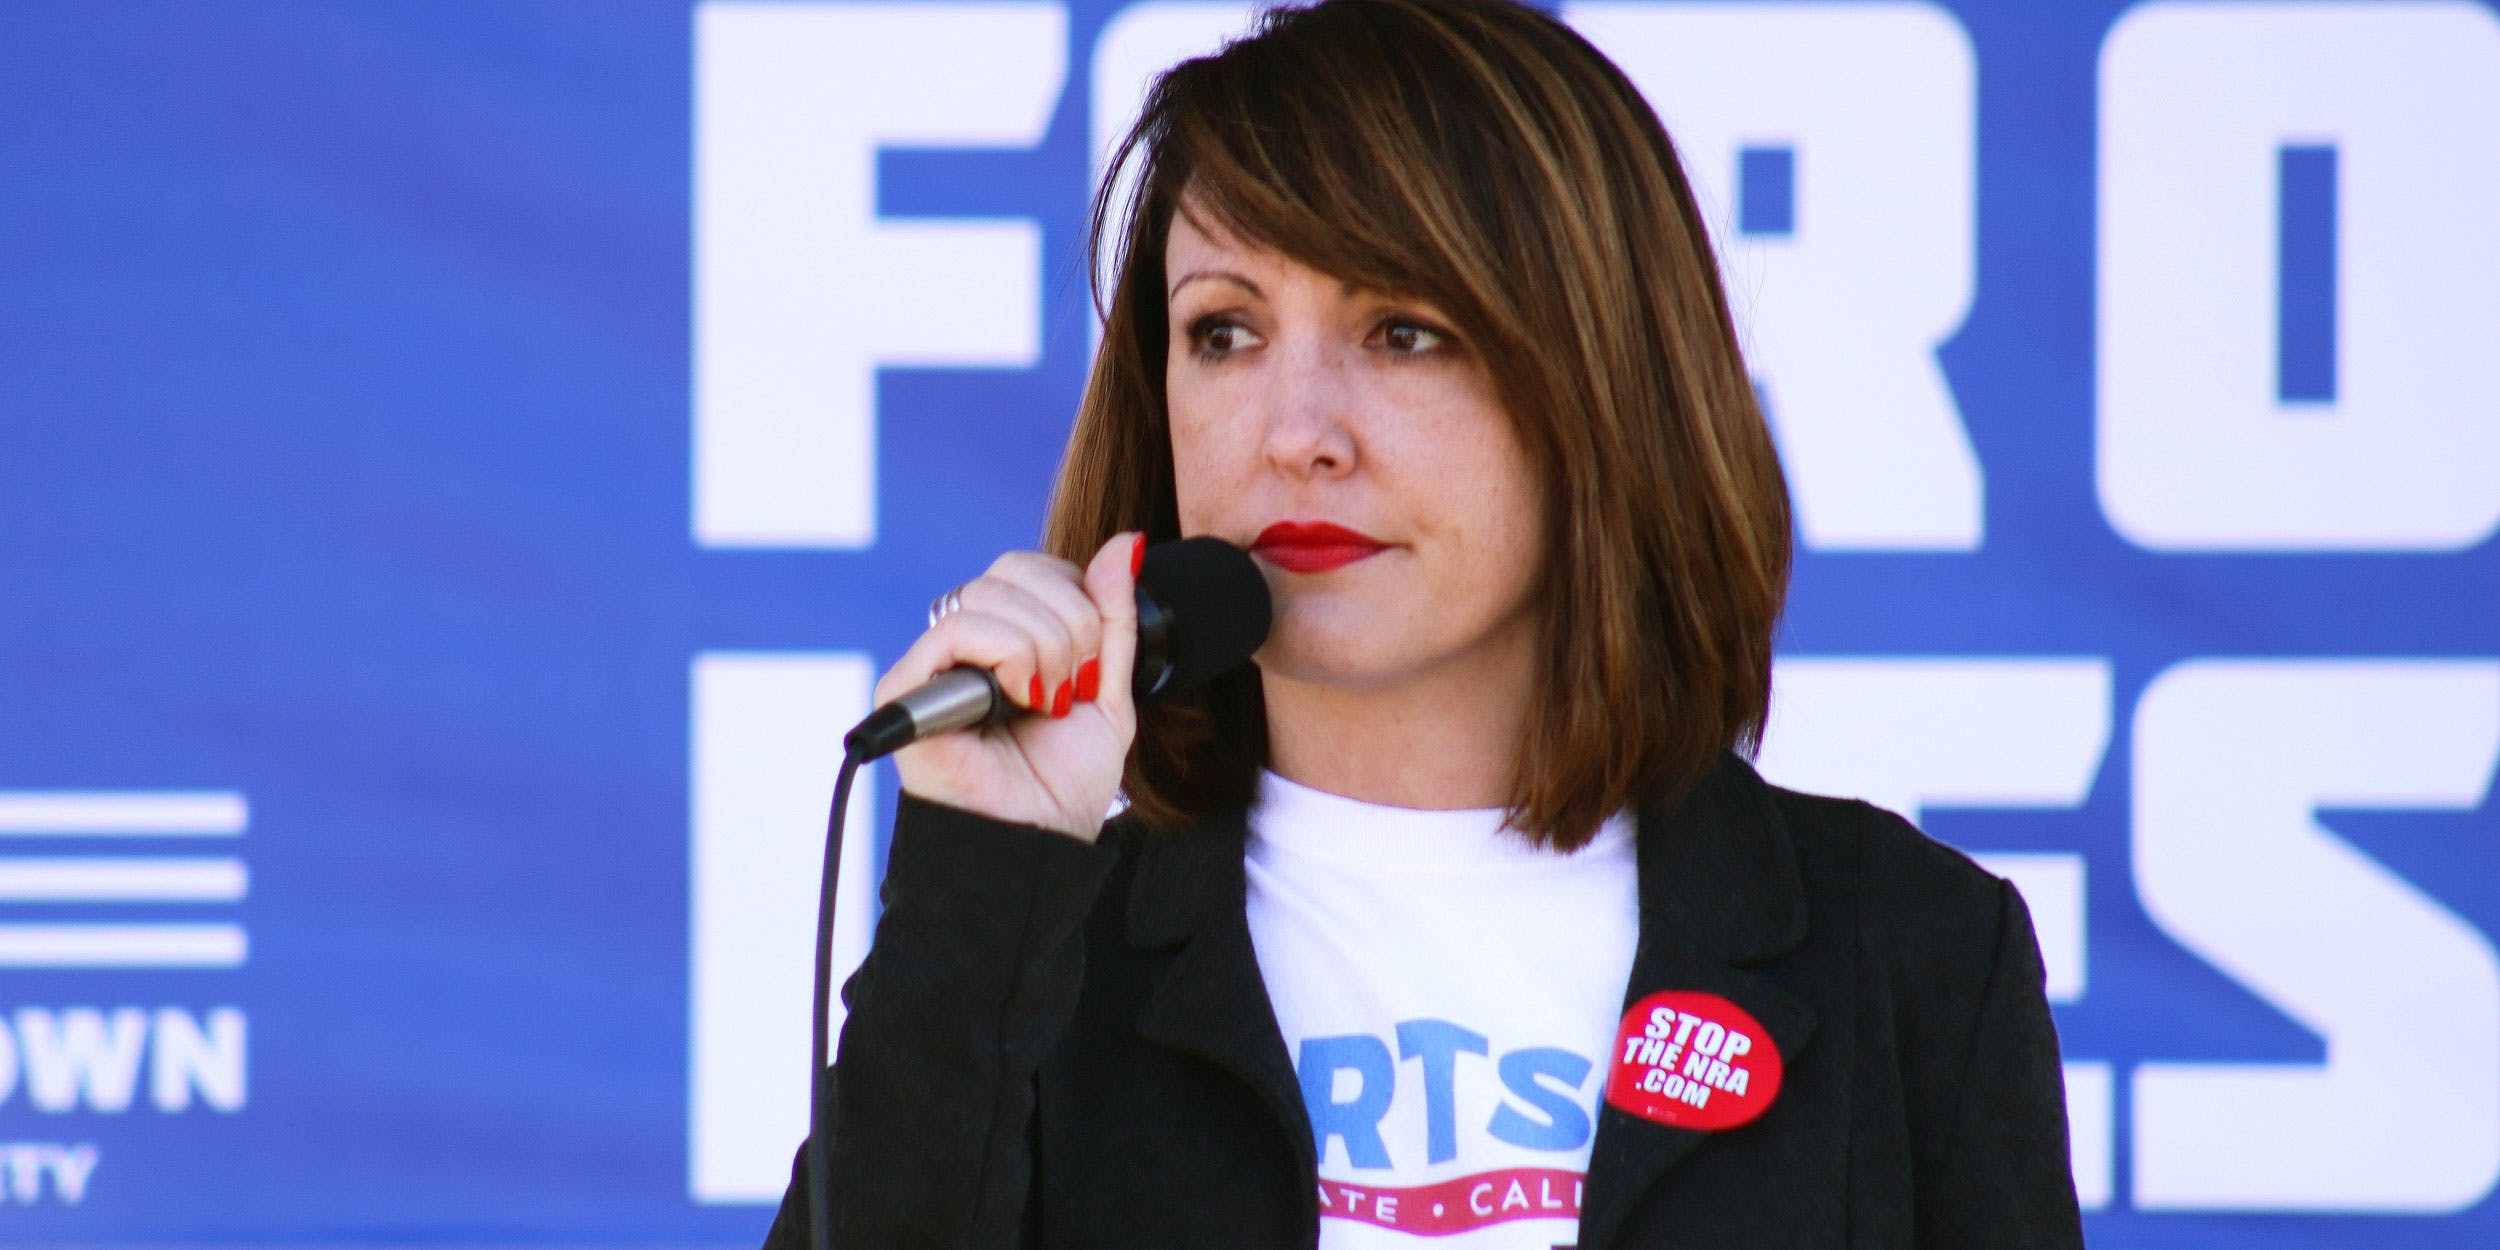 Alison Hartson speaking at the march for our lives